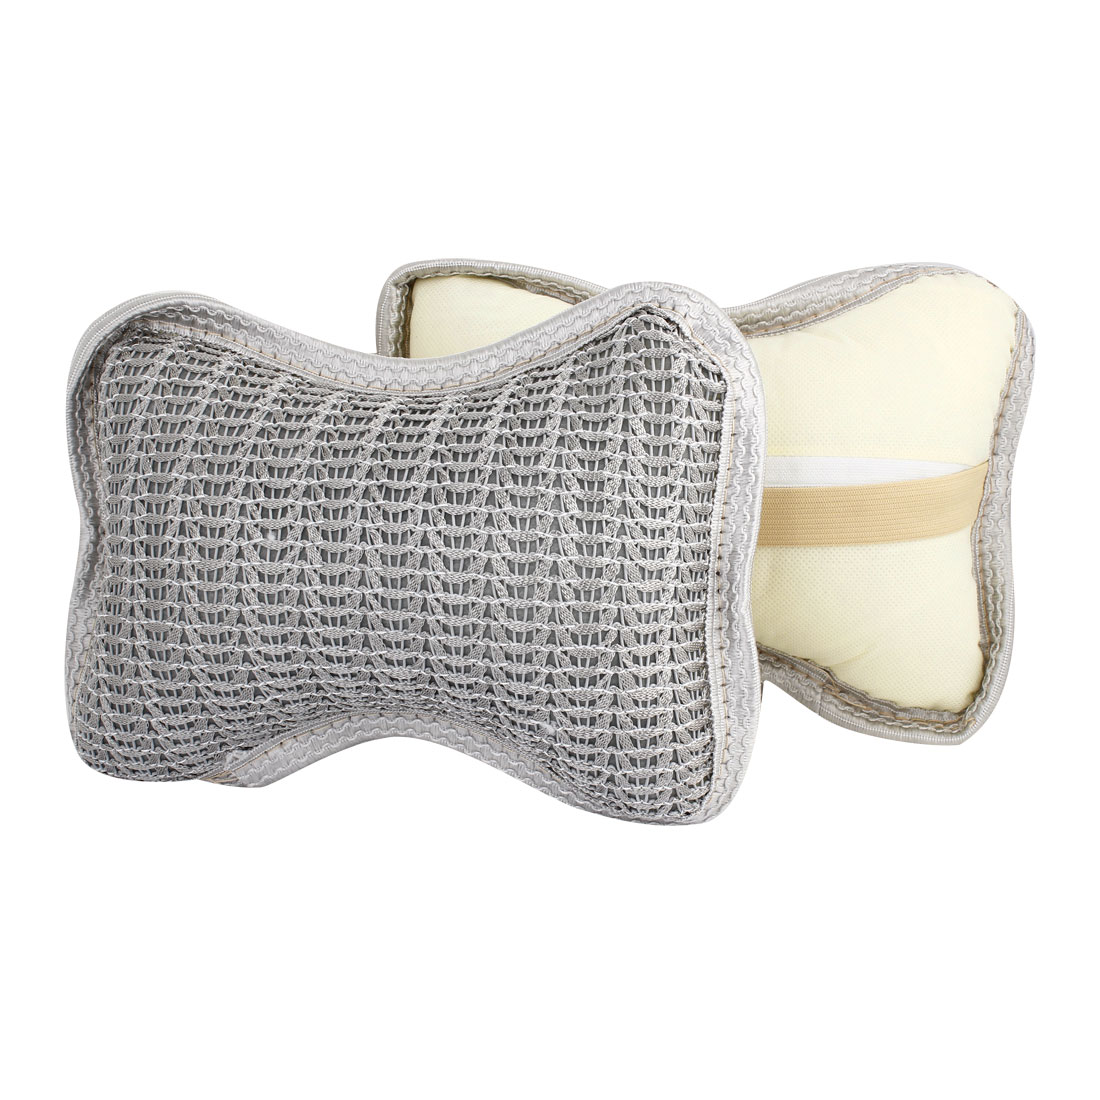 Net Design Neck Headrest Car Cushion Plaid Pillow Gray 2Pcs for Car